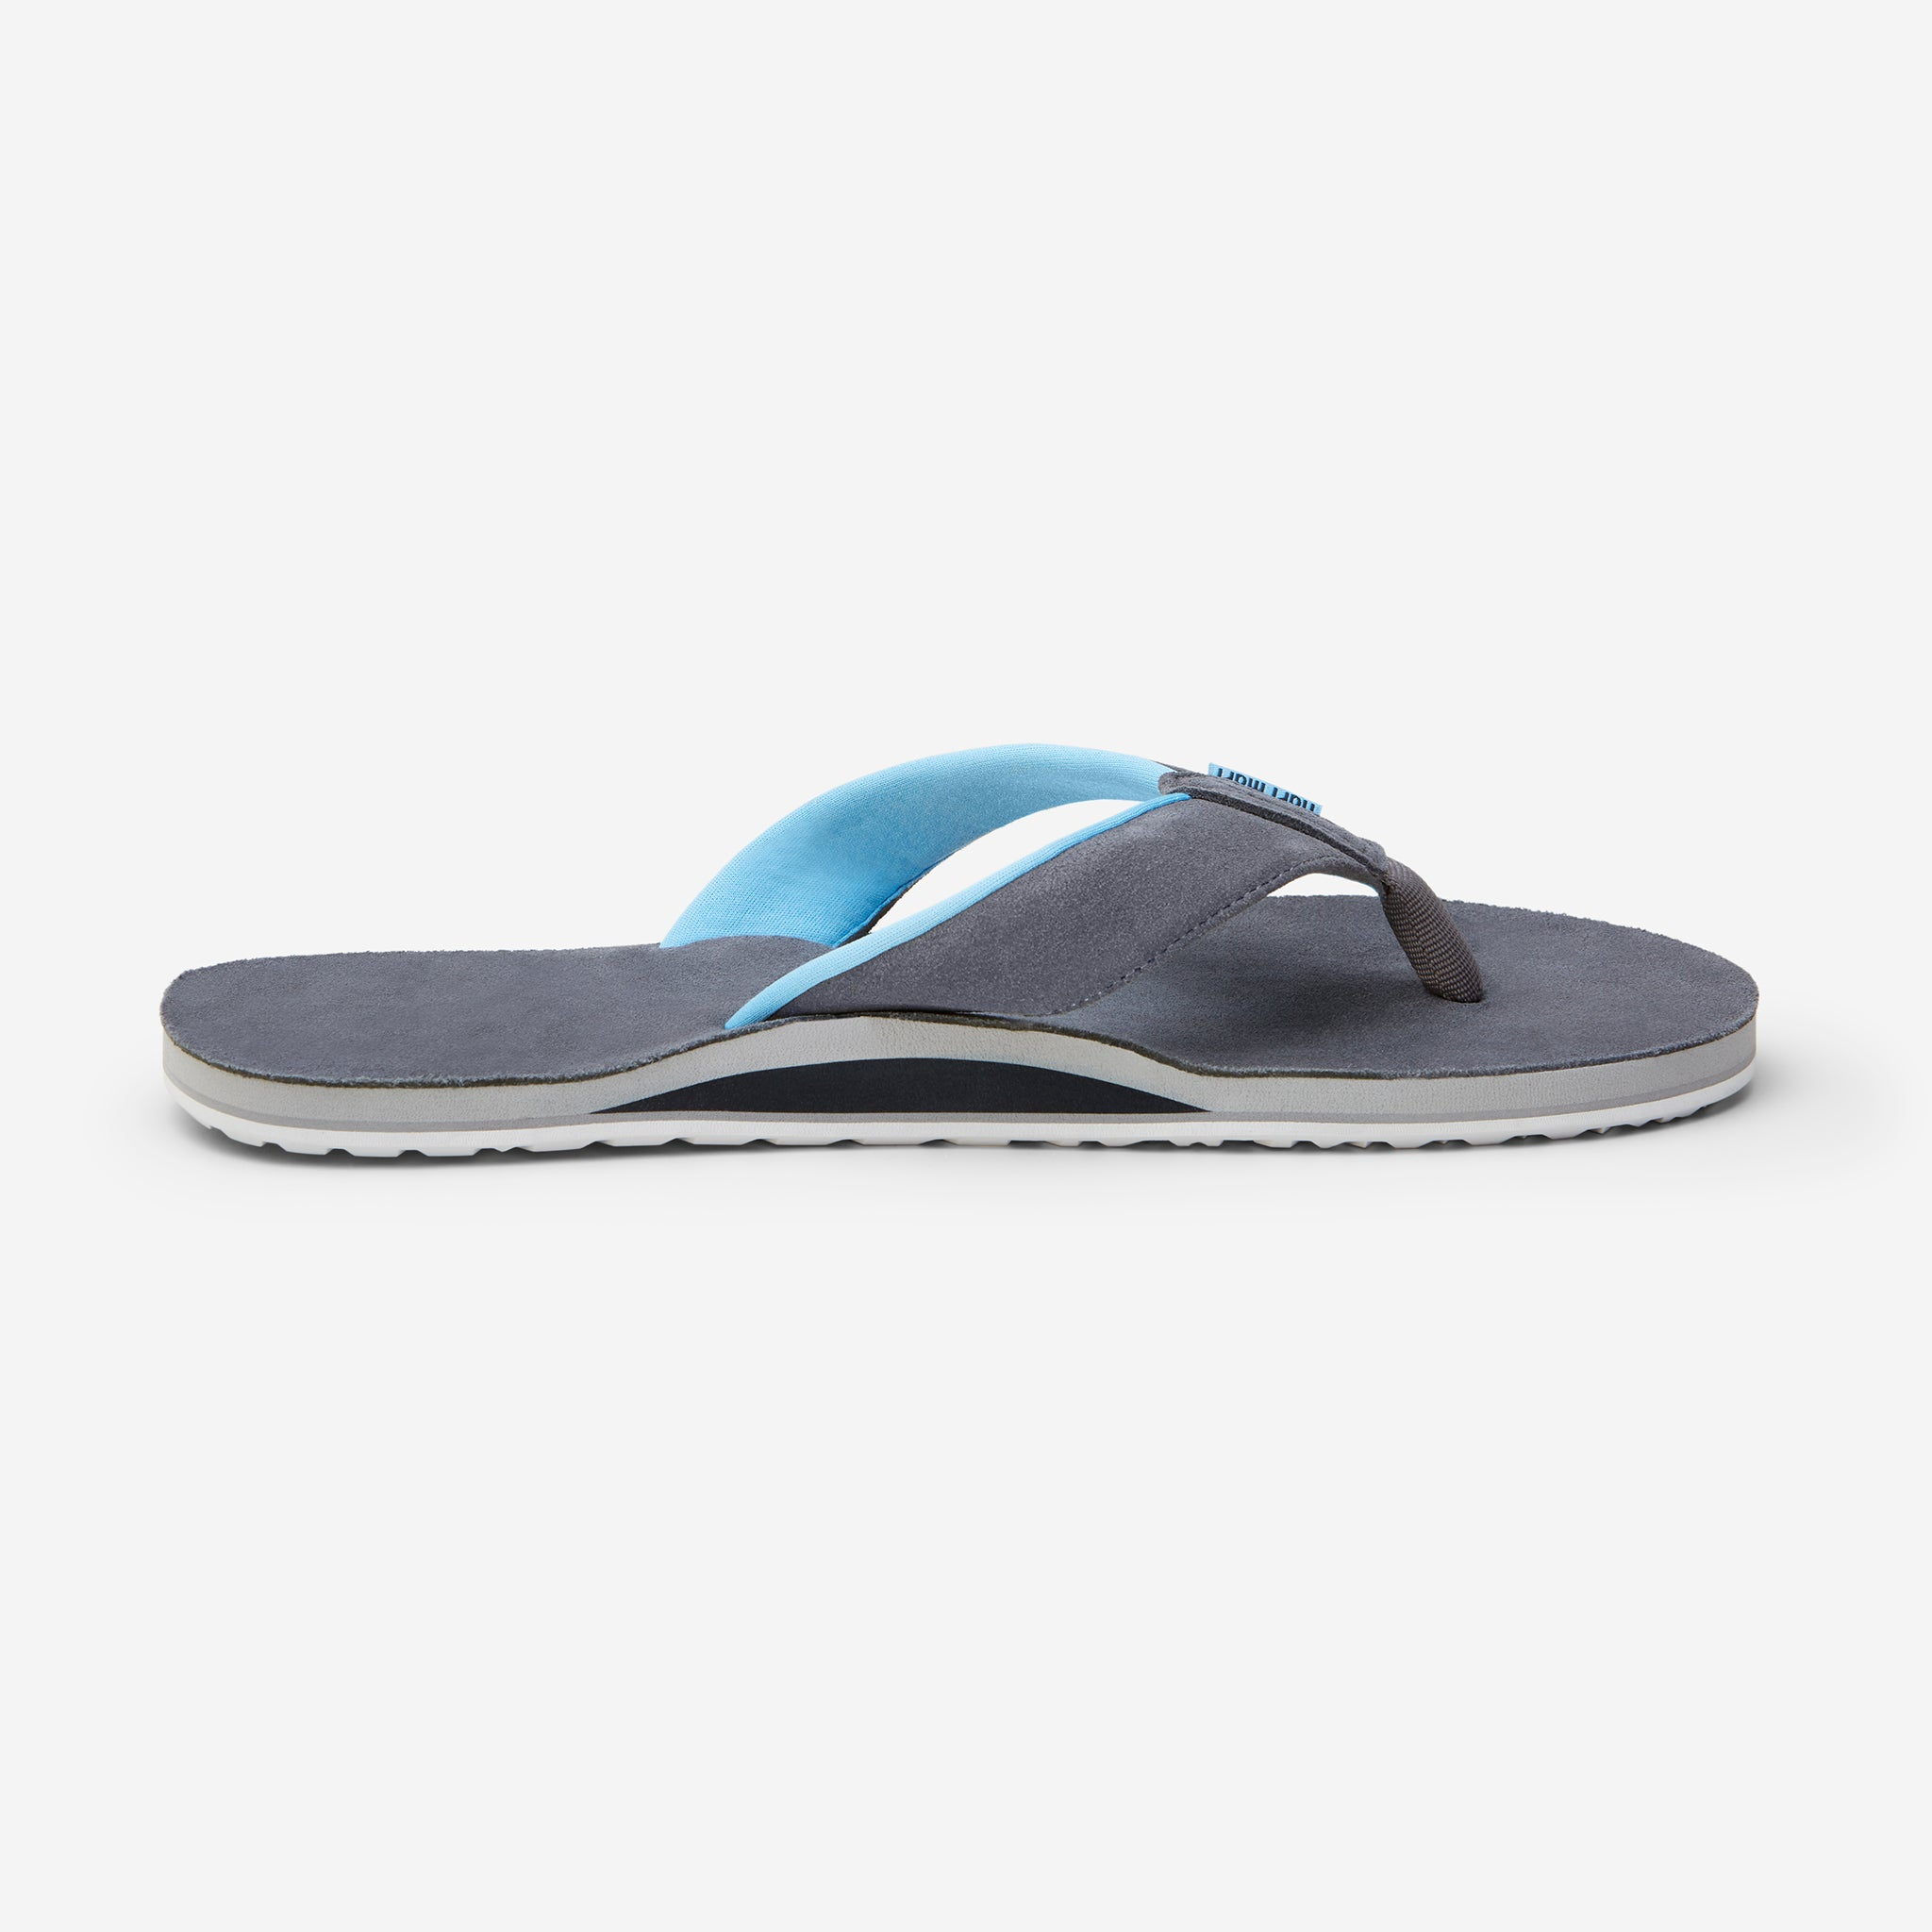 side profile of Hari Mari Men's Park Ranger Flip Flops in Charcoal on white background